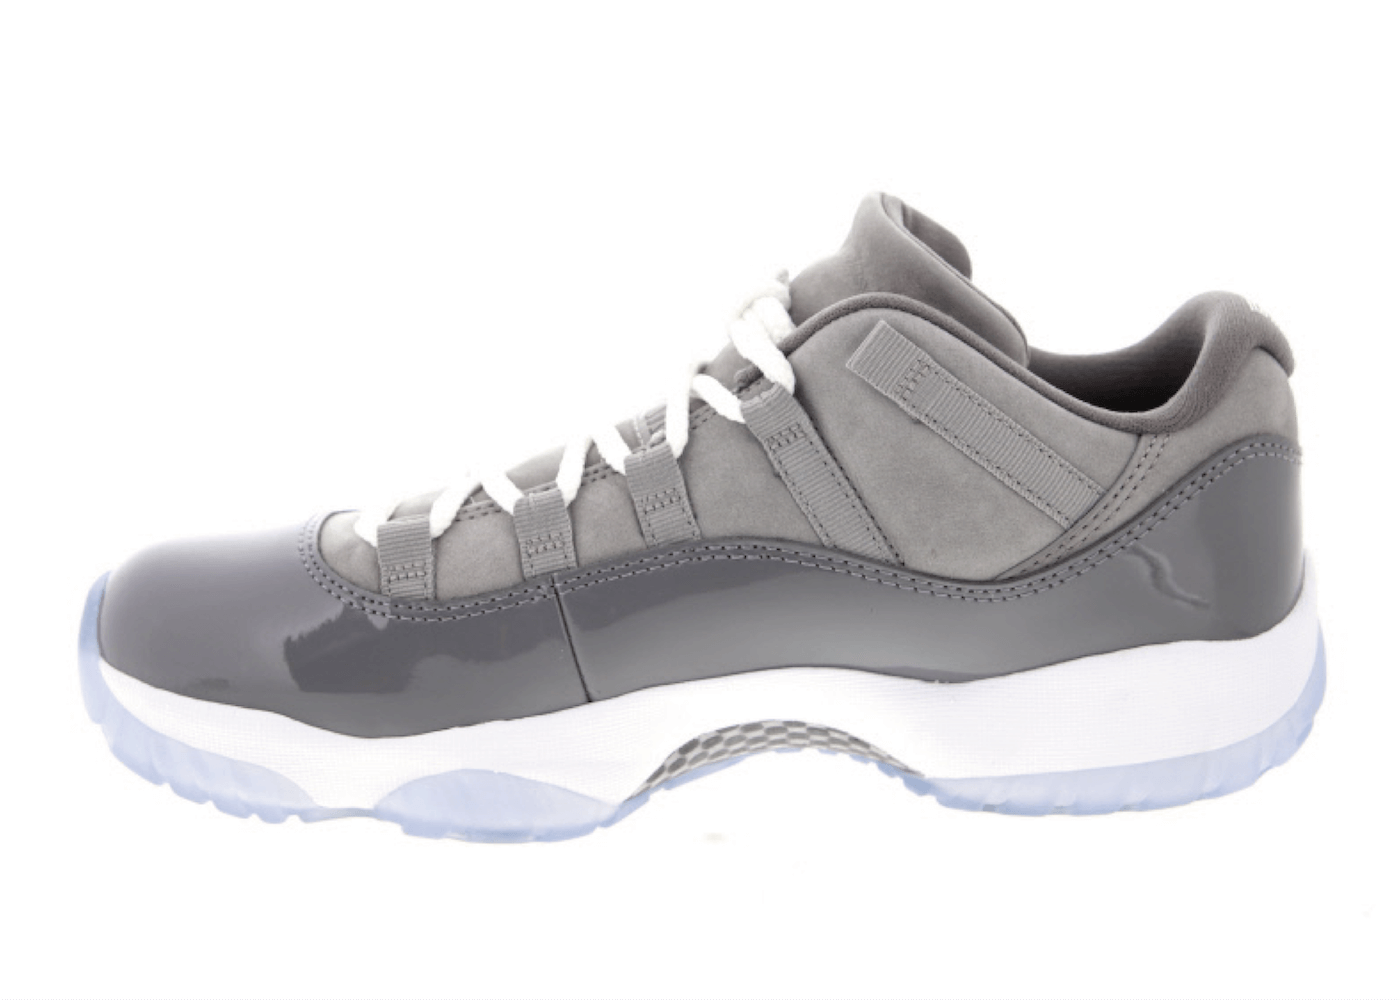 JORDAN 11 RETRO LOW MEDIUM GREY/GUNSMOKE-WHITEの写真